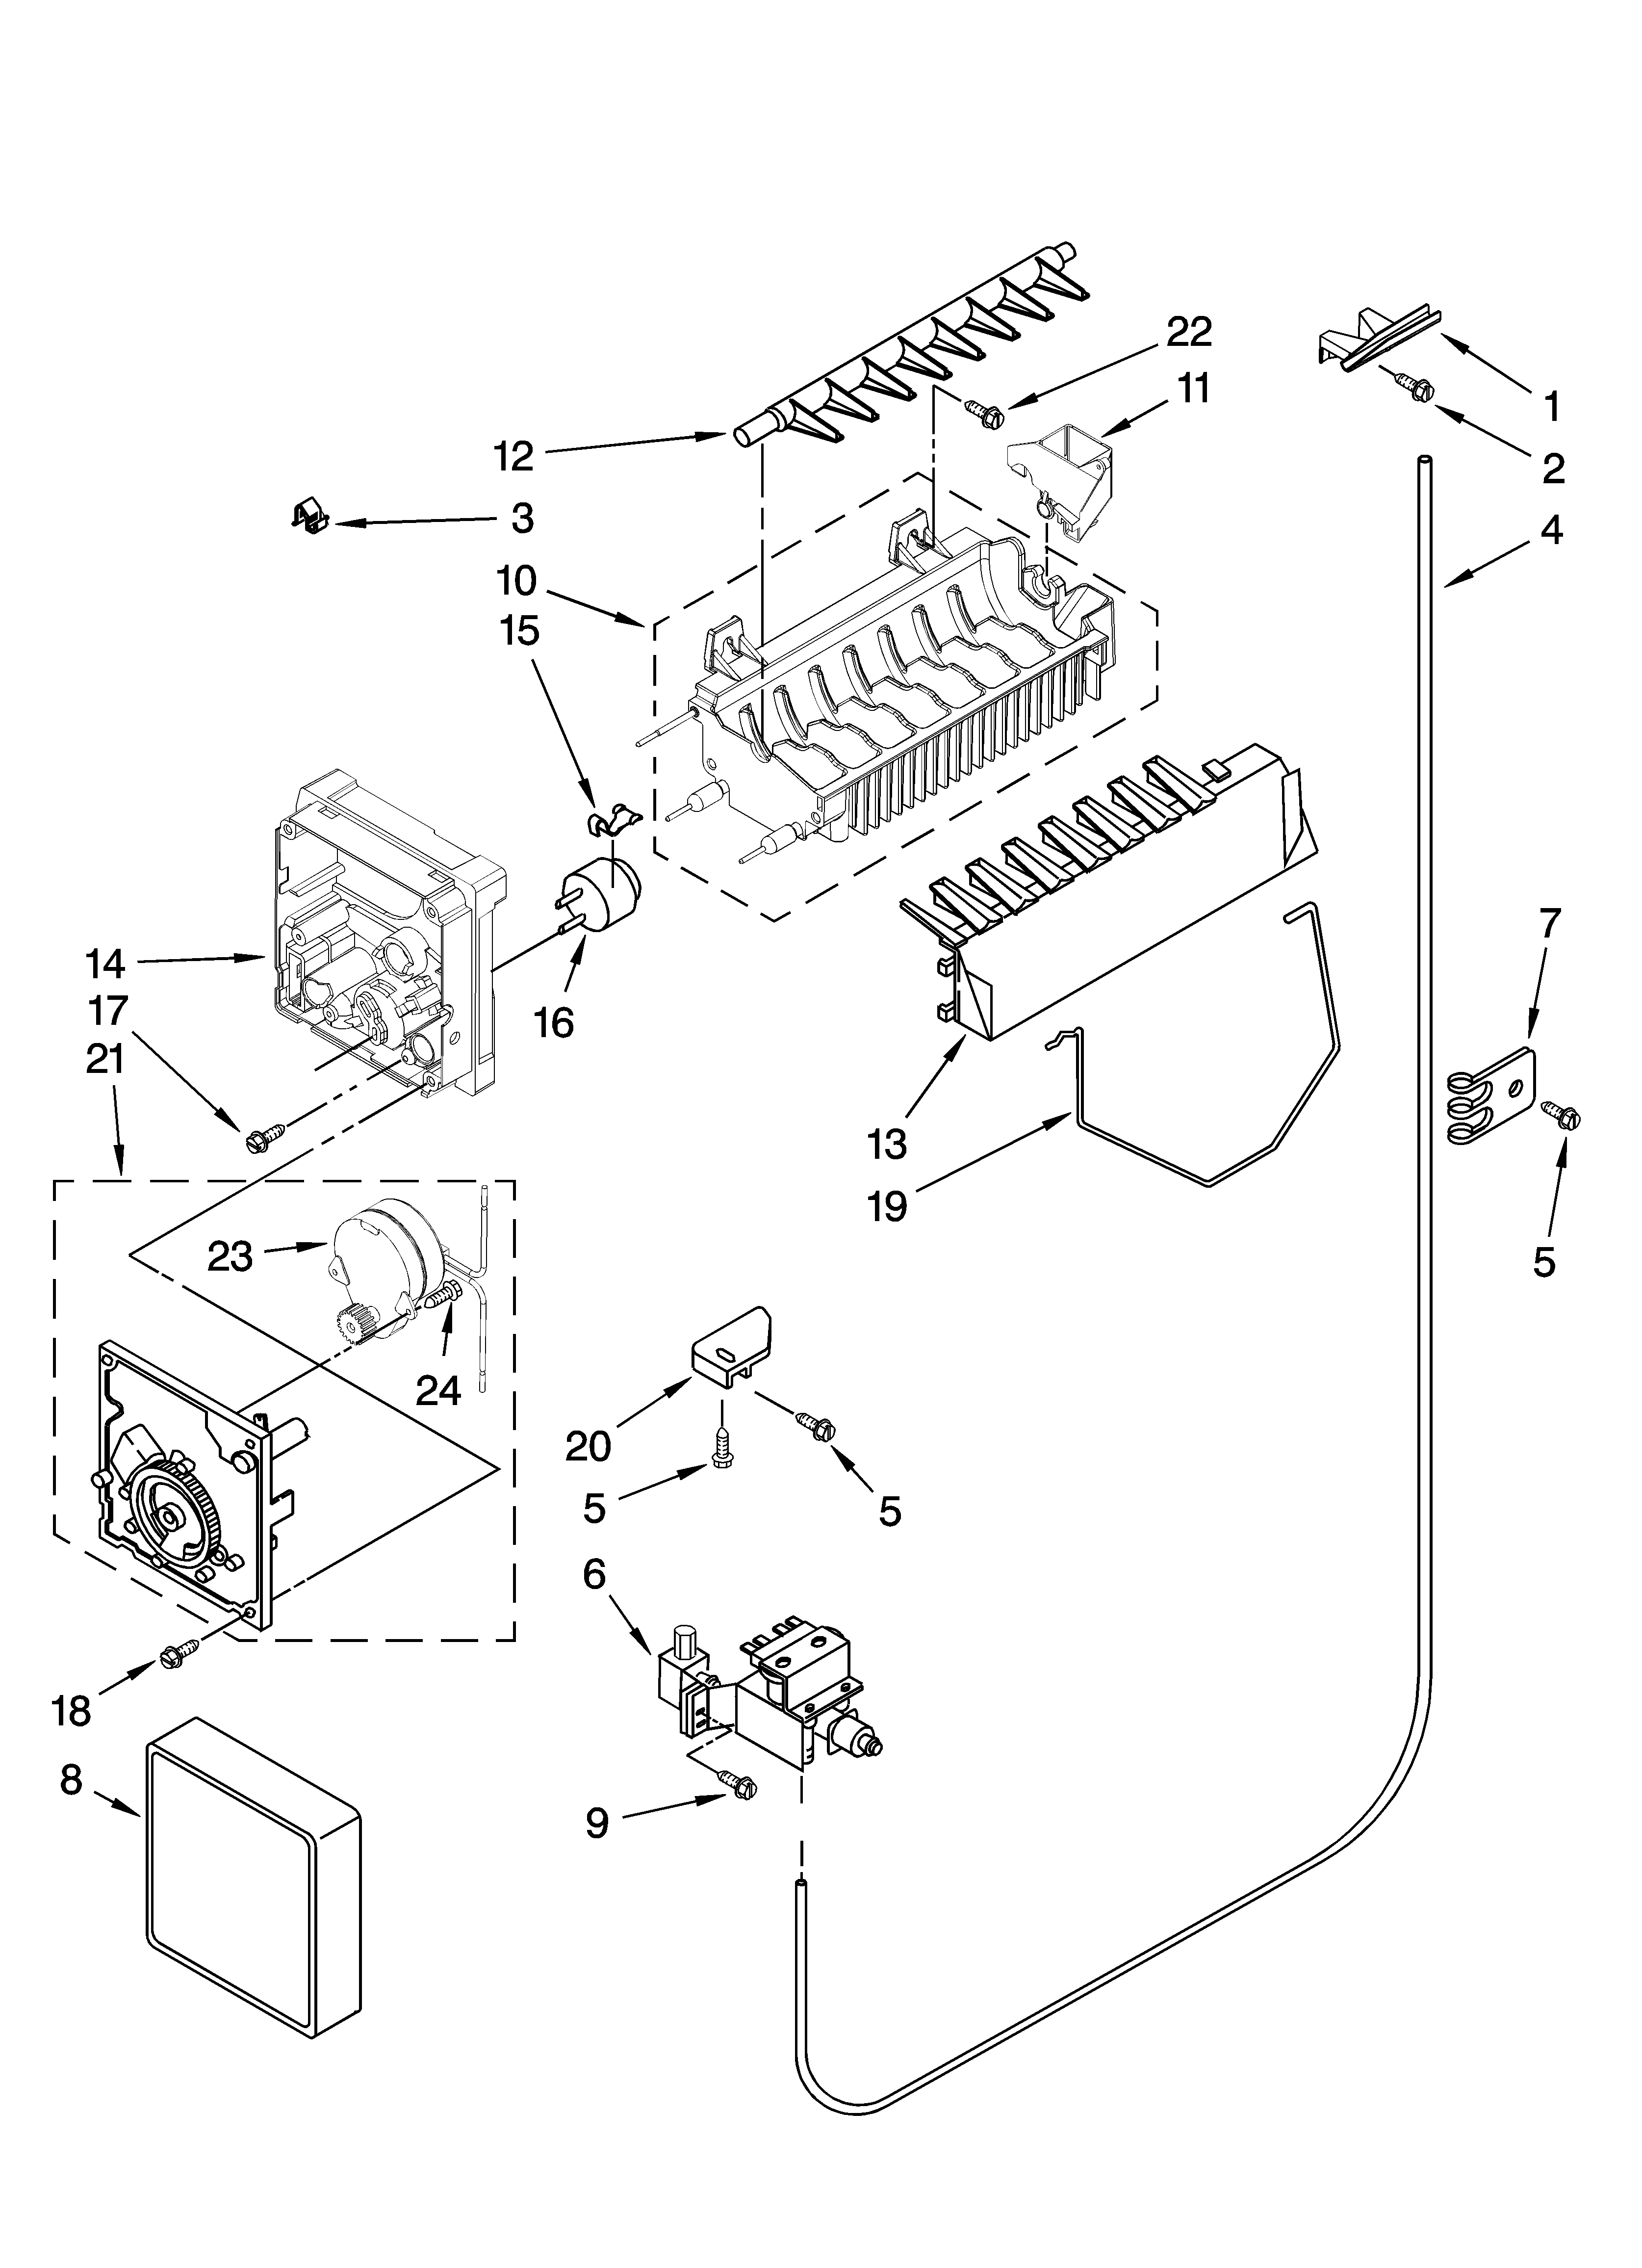 Kenmore 10657982700 icemaker parts, optional parts (not included) diagram